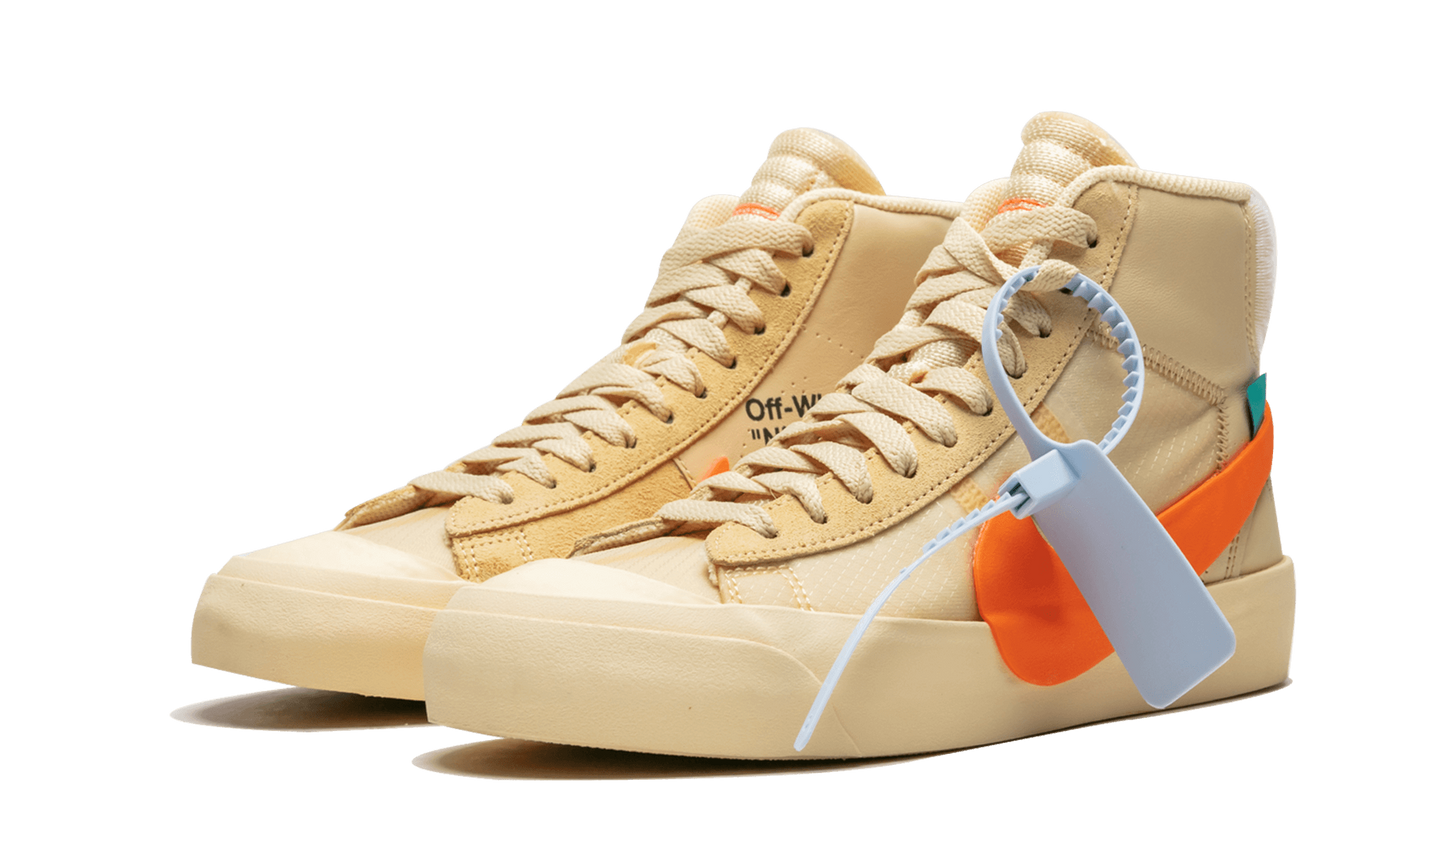 Nike Nike Mid Blazer Off-White All Hallow's Eve - Street Peek